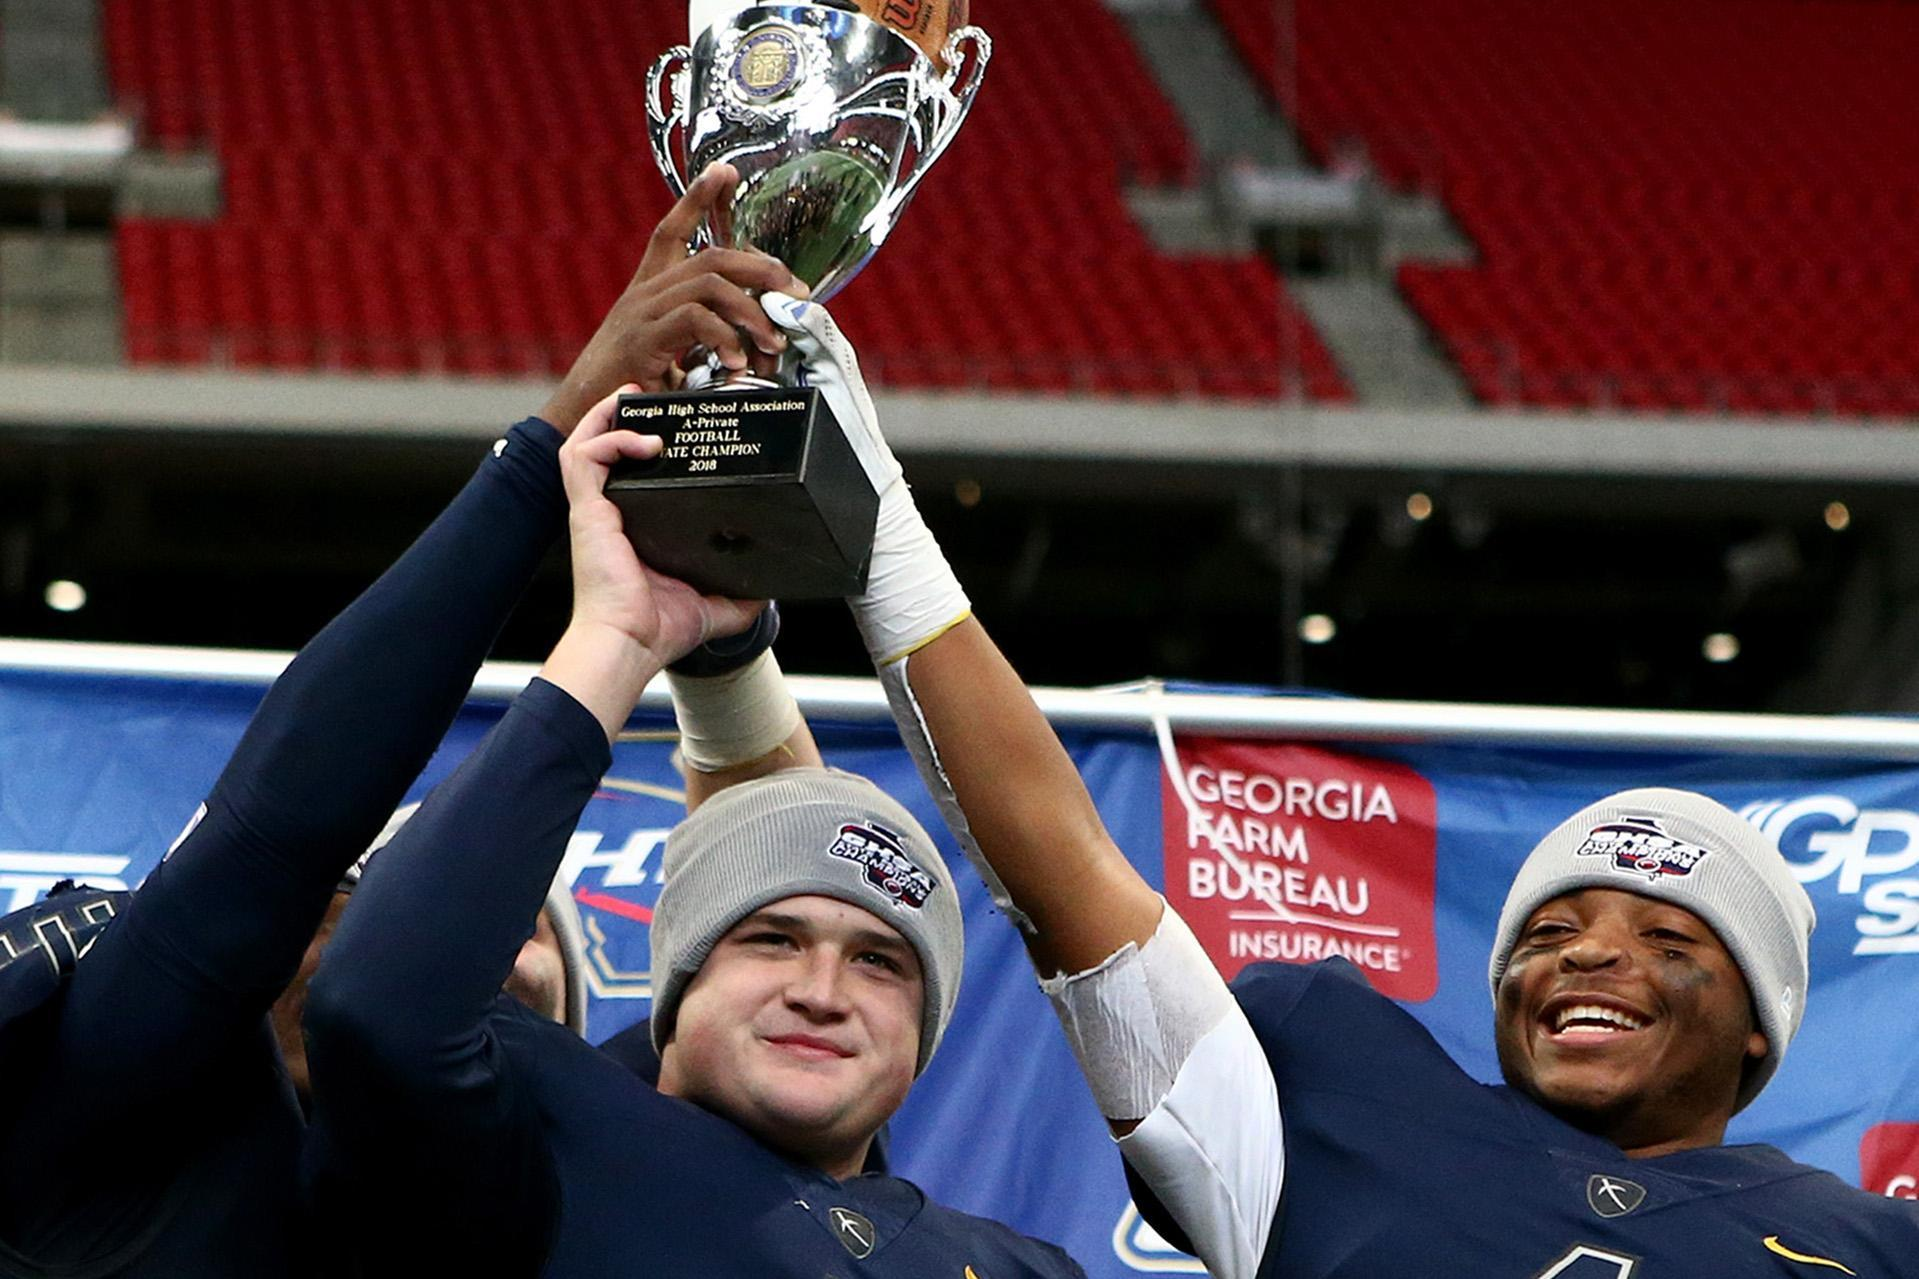 ELCA Football players holding ghsa state championship trophy